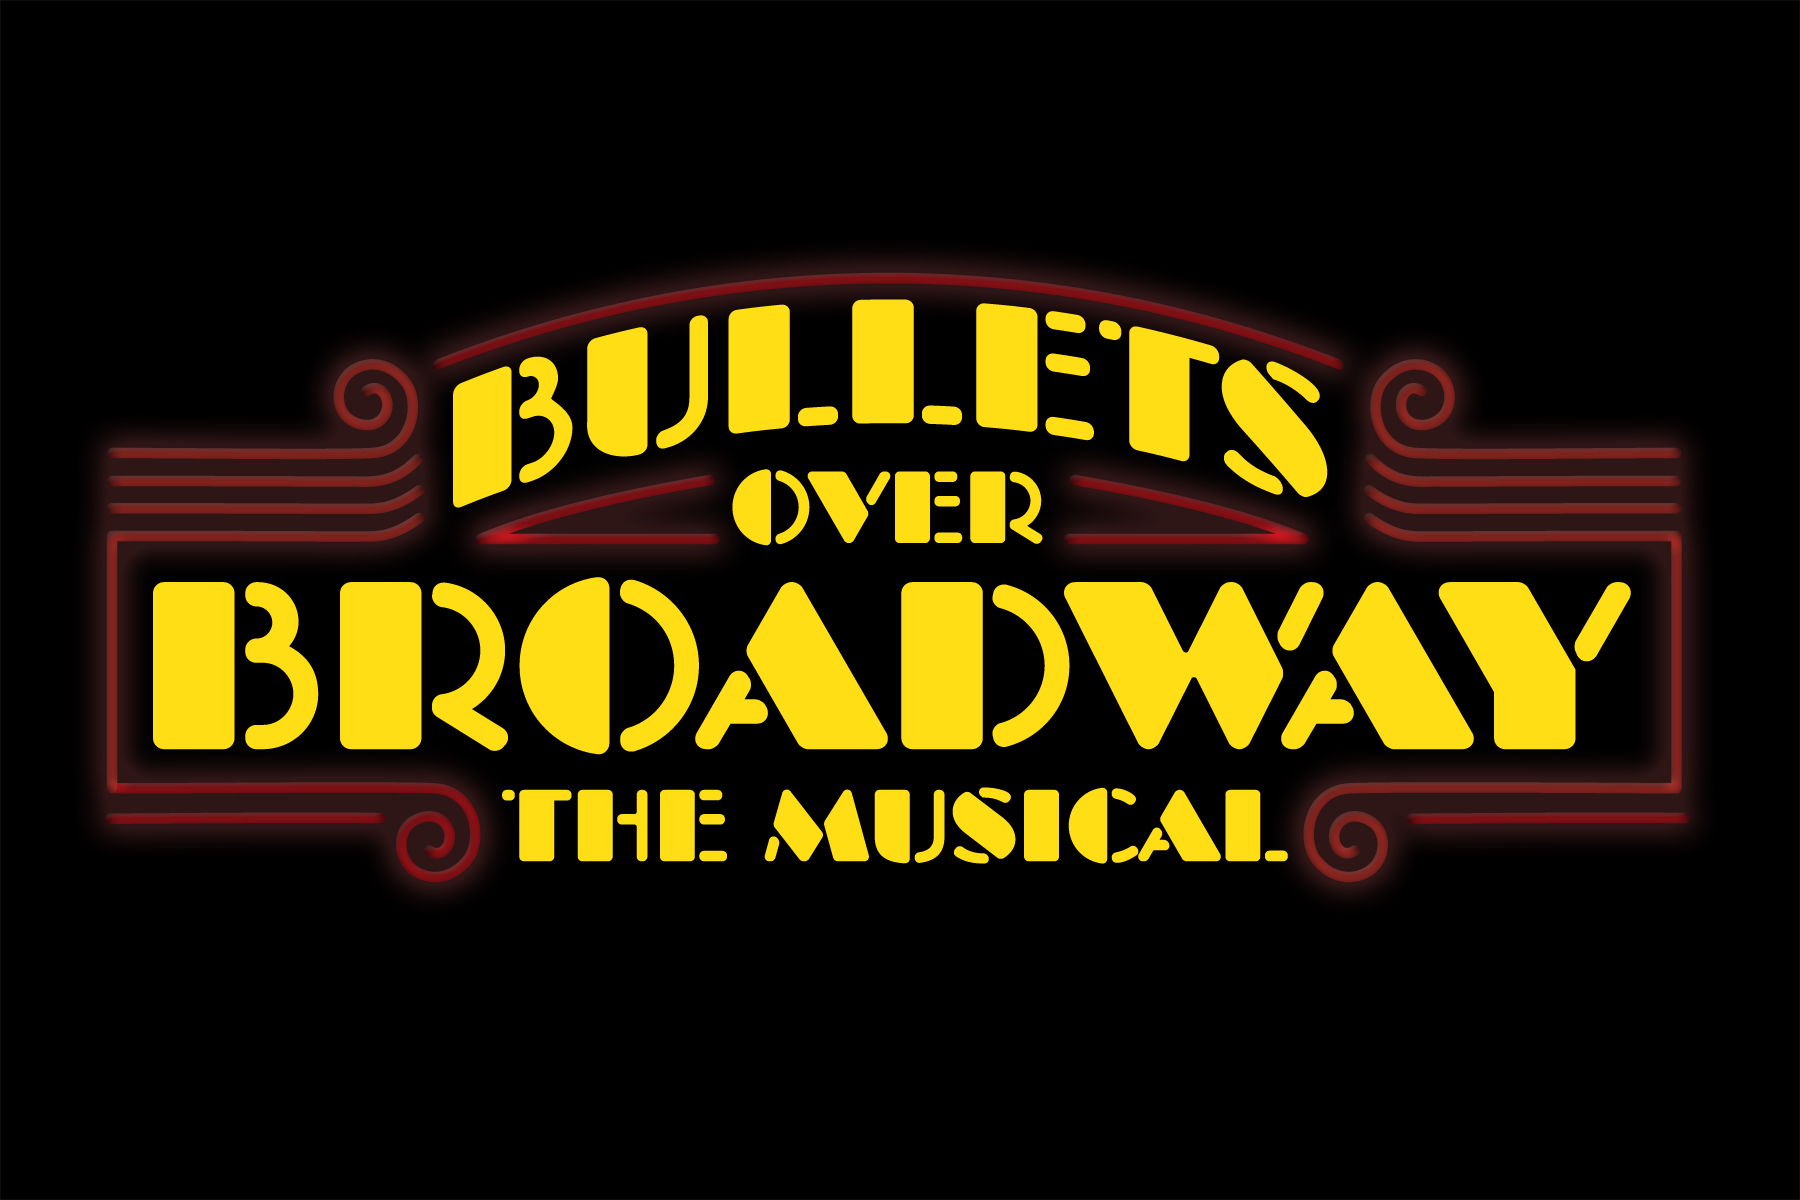 Bullets over broadway musical announces theatre pushed for The broadway